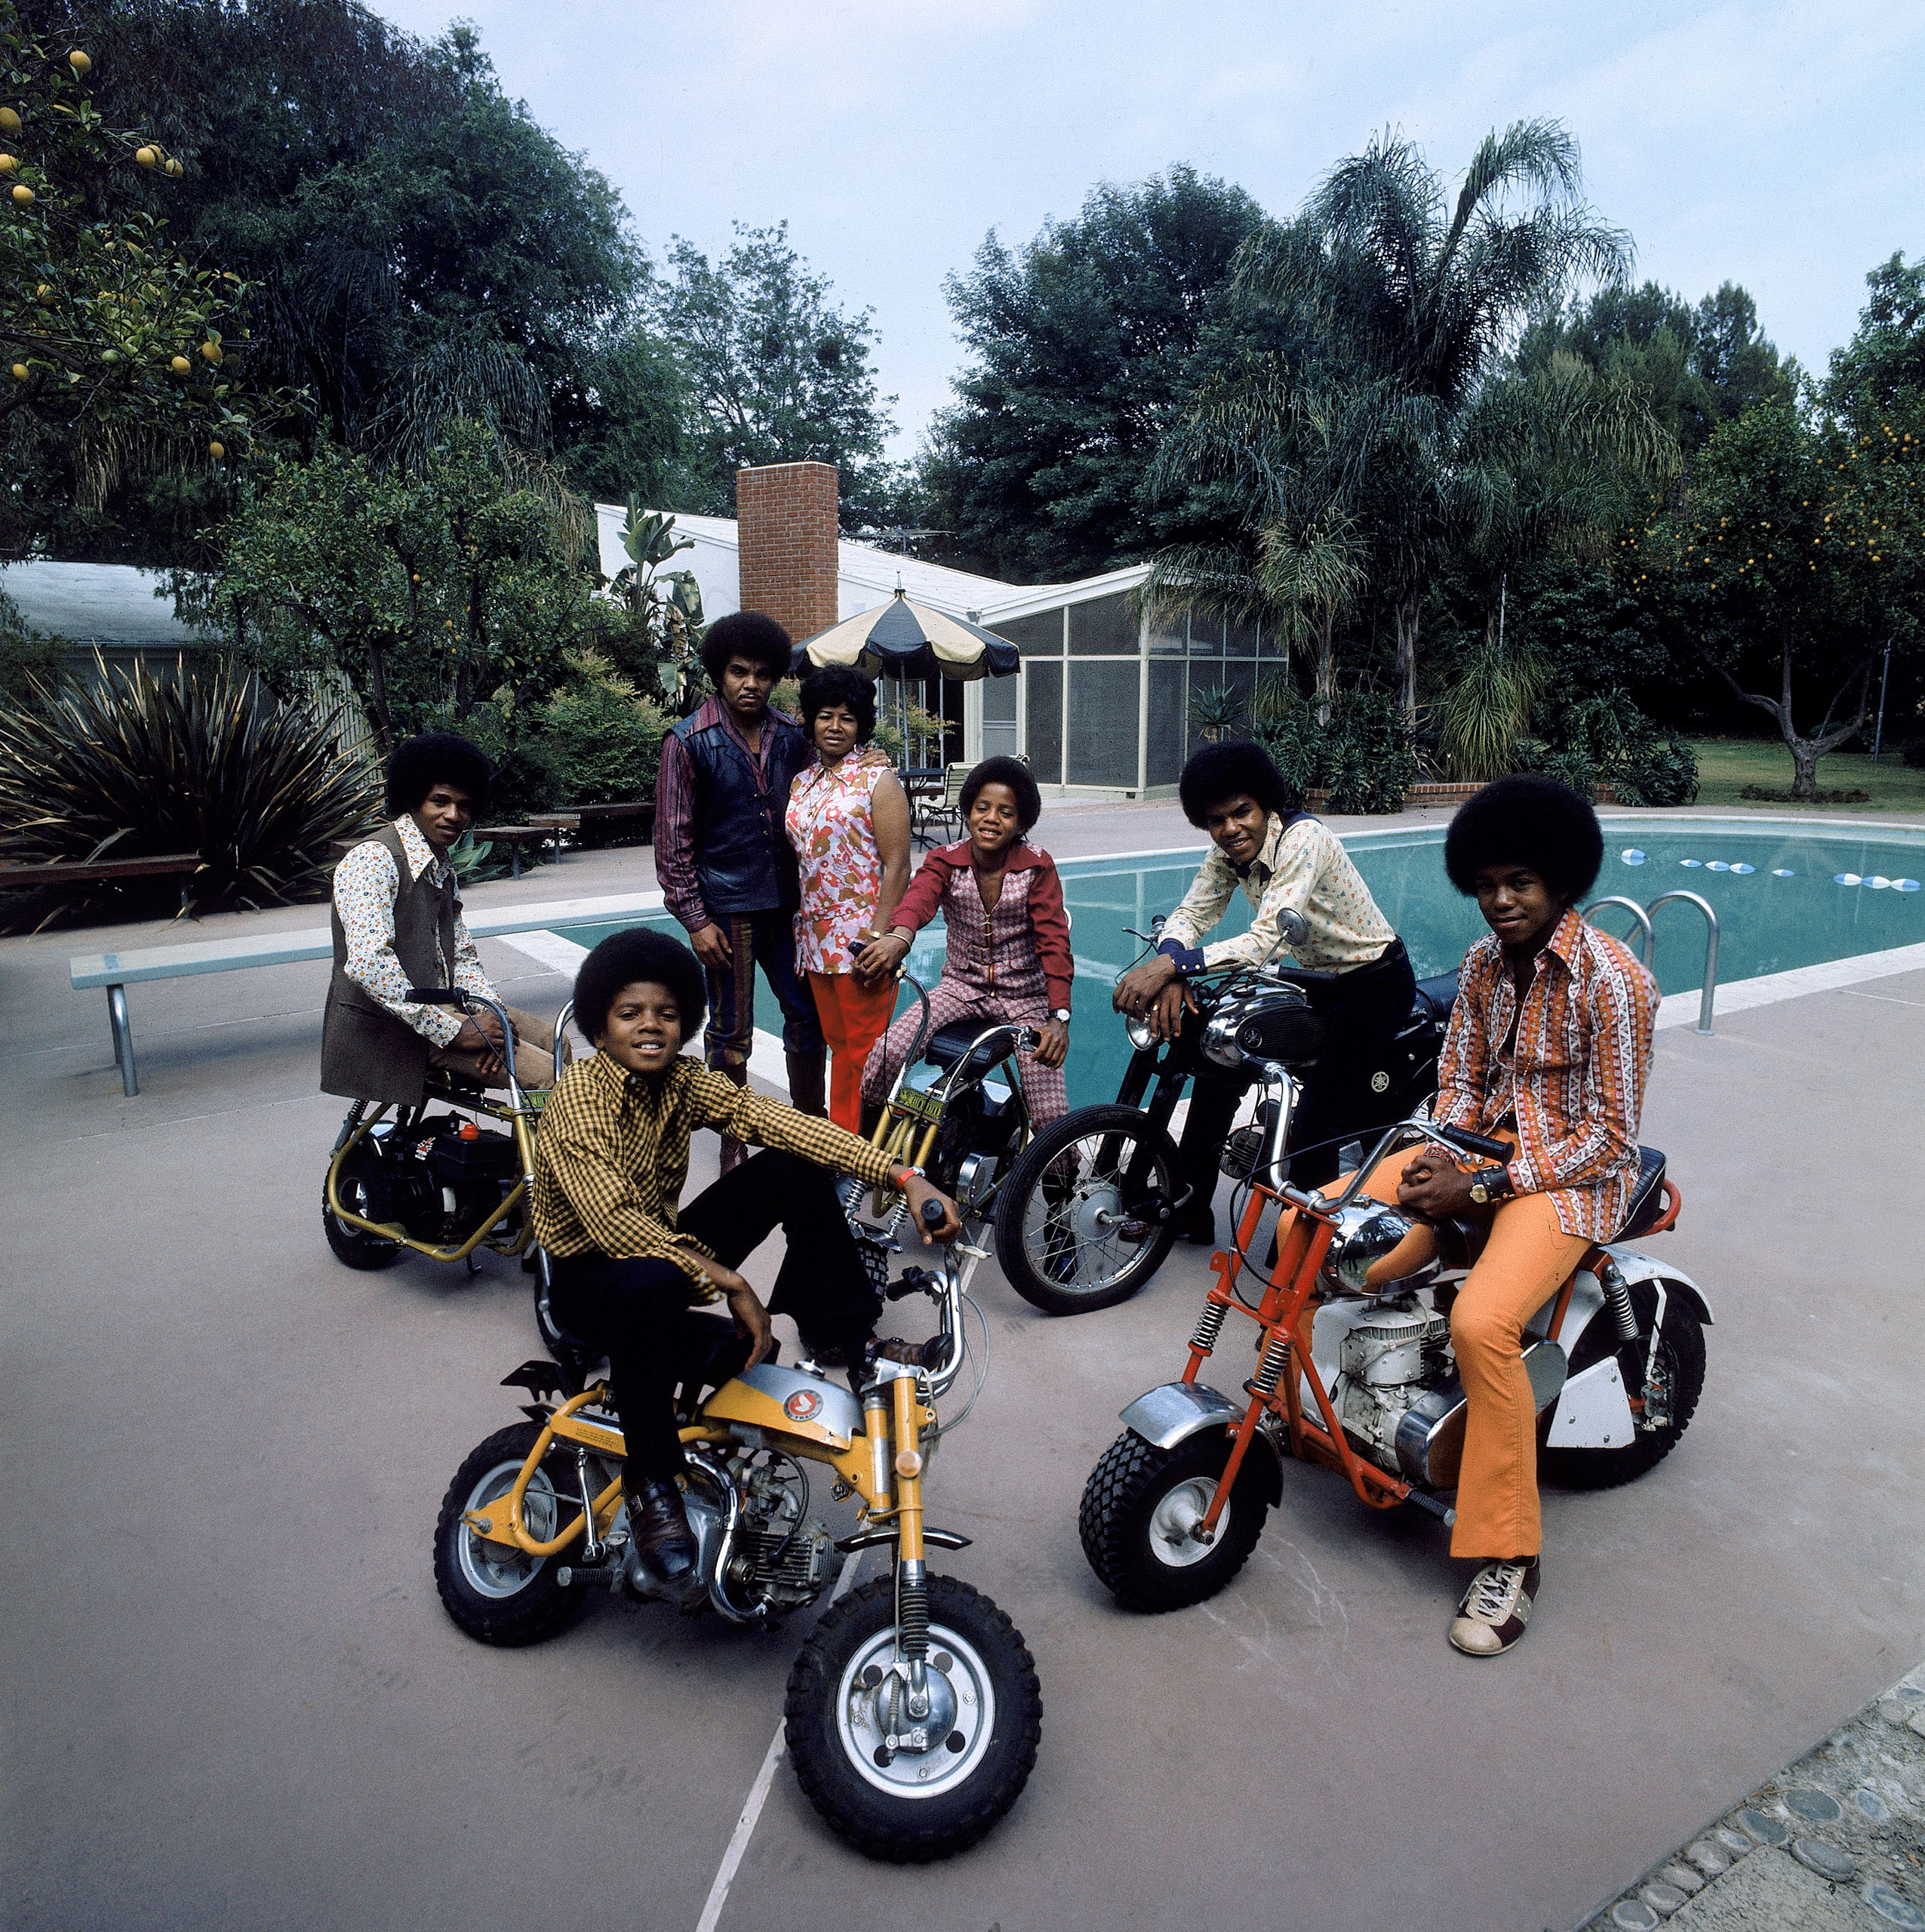 Make like the Jackson Five in 1970 with bellbottoms, ample polyester and a motorized scooter for trick-or-treating.